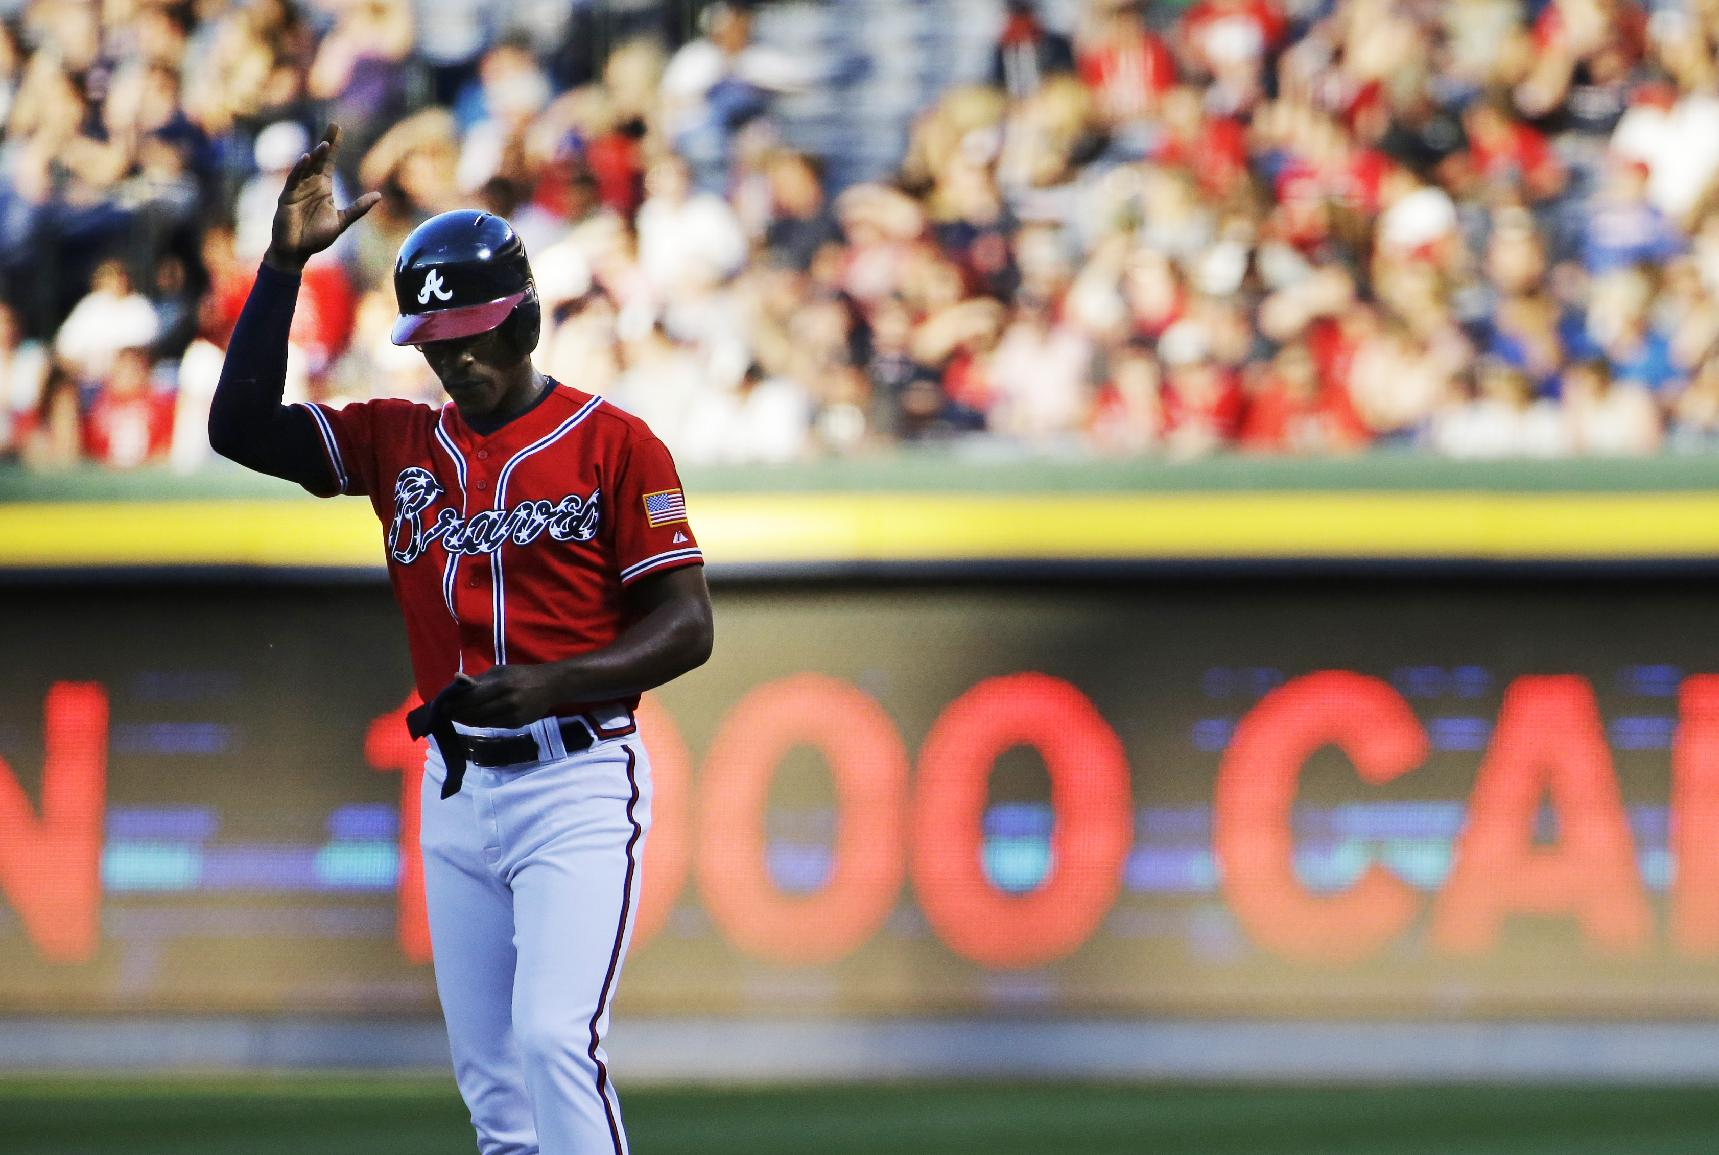 Atlanta Braves' B.J. Upton acknowledges the cheers from the crowd after hitting his 1000th career hit in the first inning of a baseball game against the Cincinnati Reds, Saturday, April 26, 2014, in Atlanta